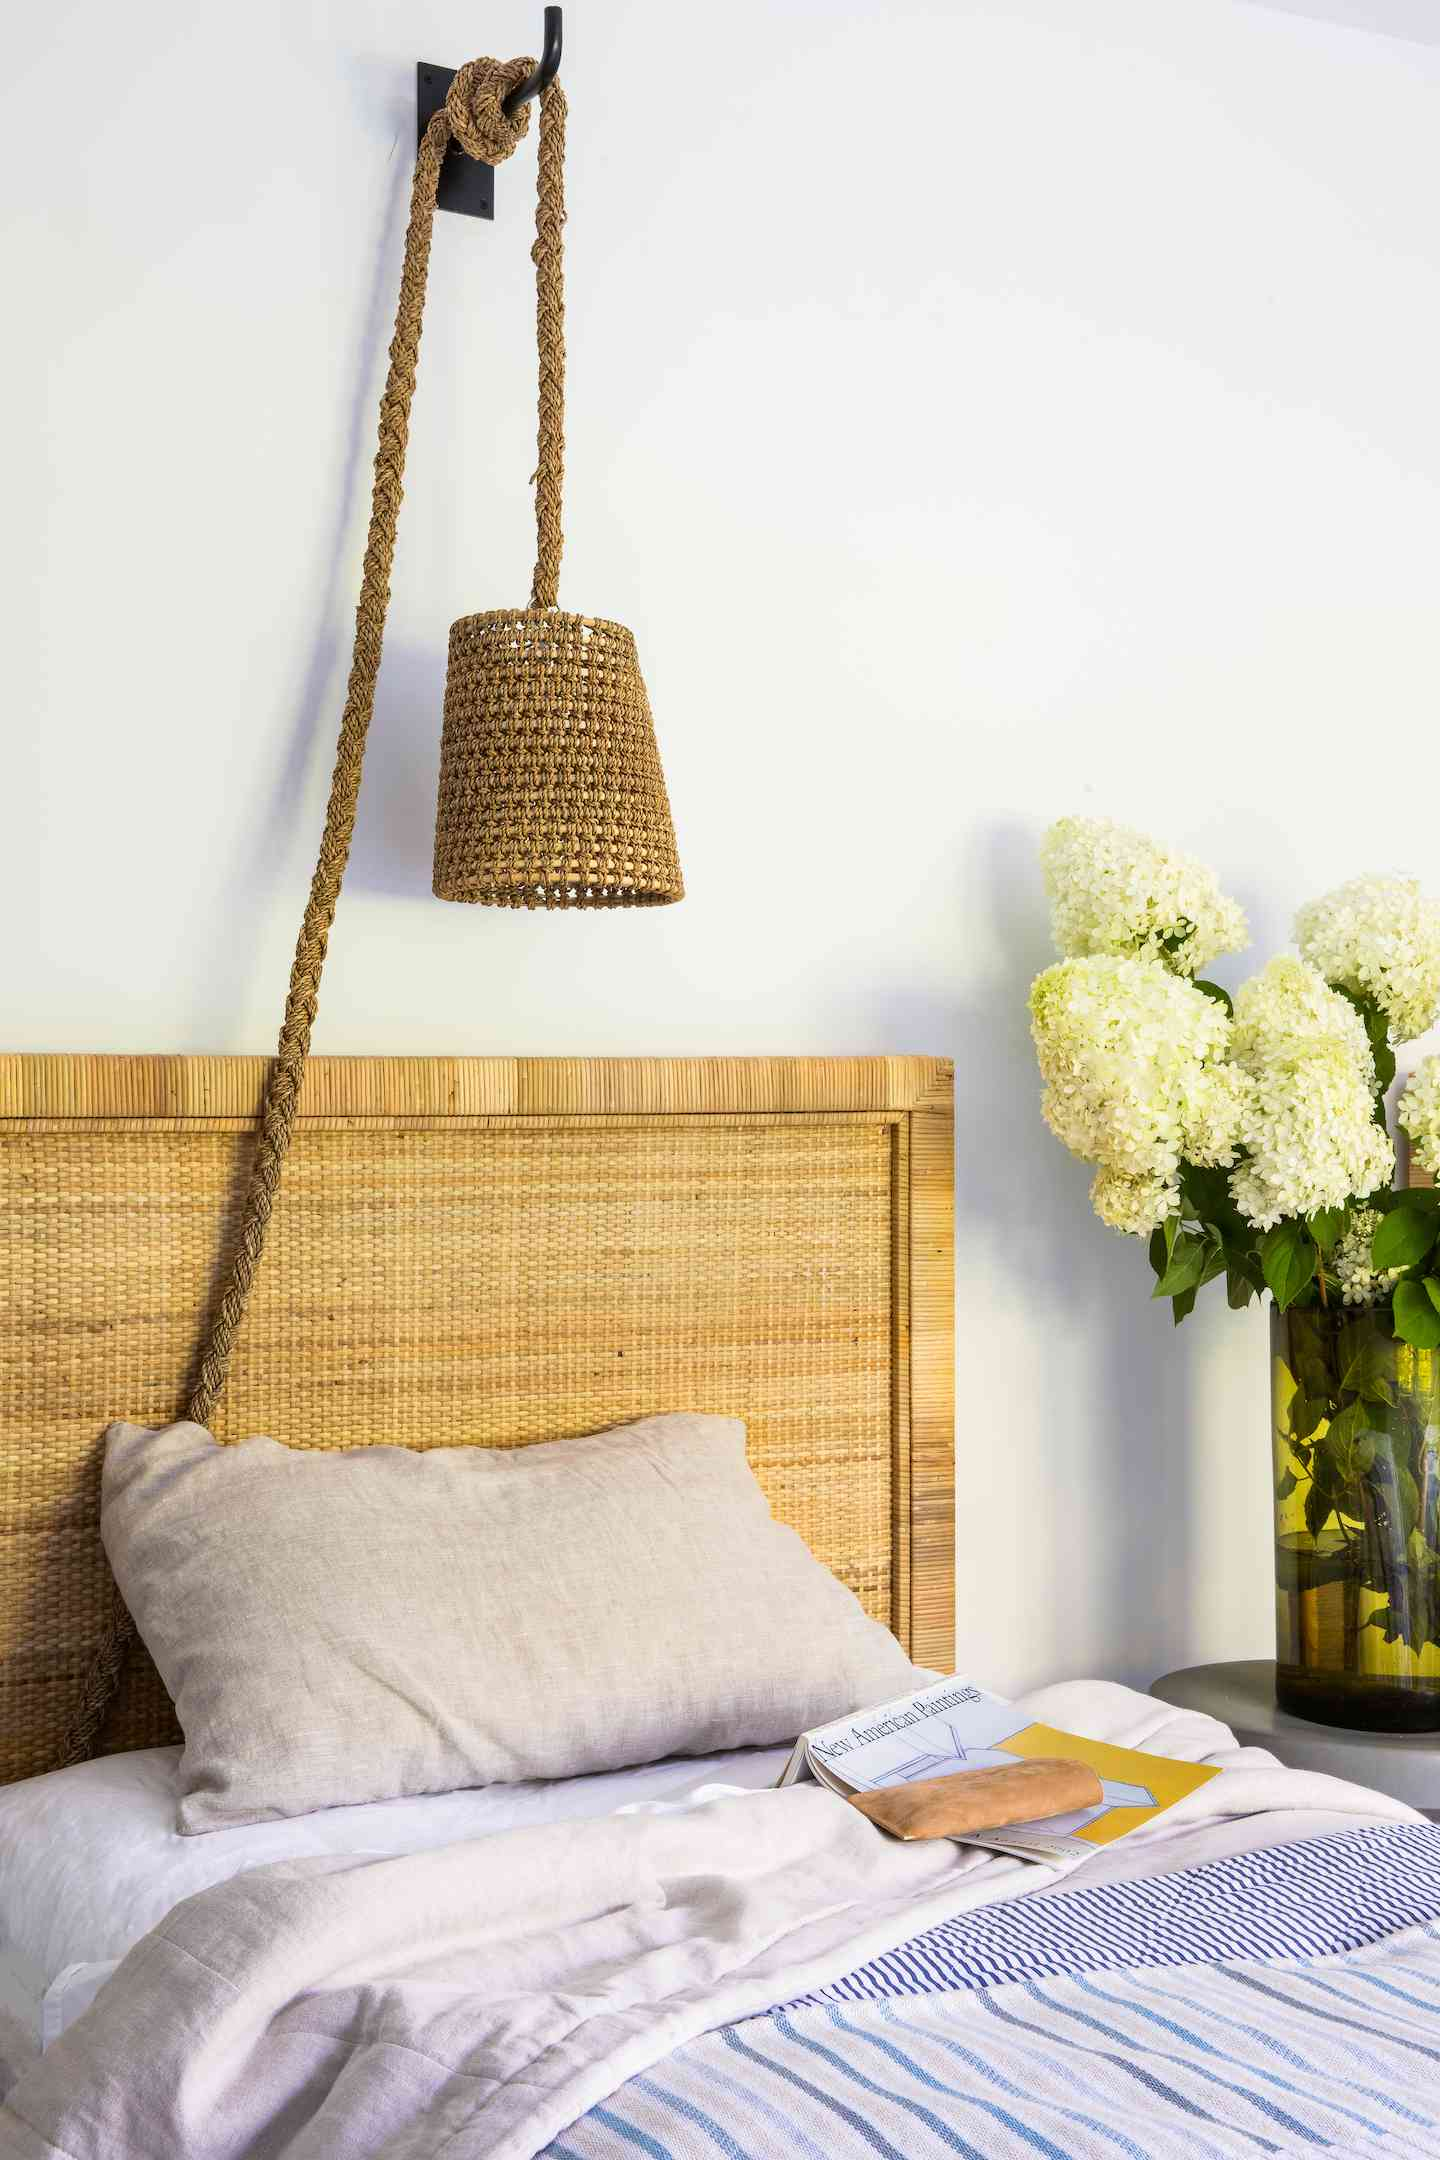 Bed with nautical rope lamp and side table with flowers.